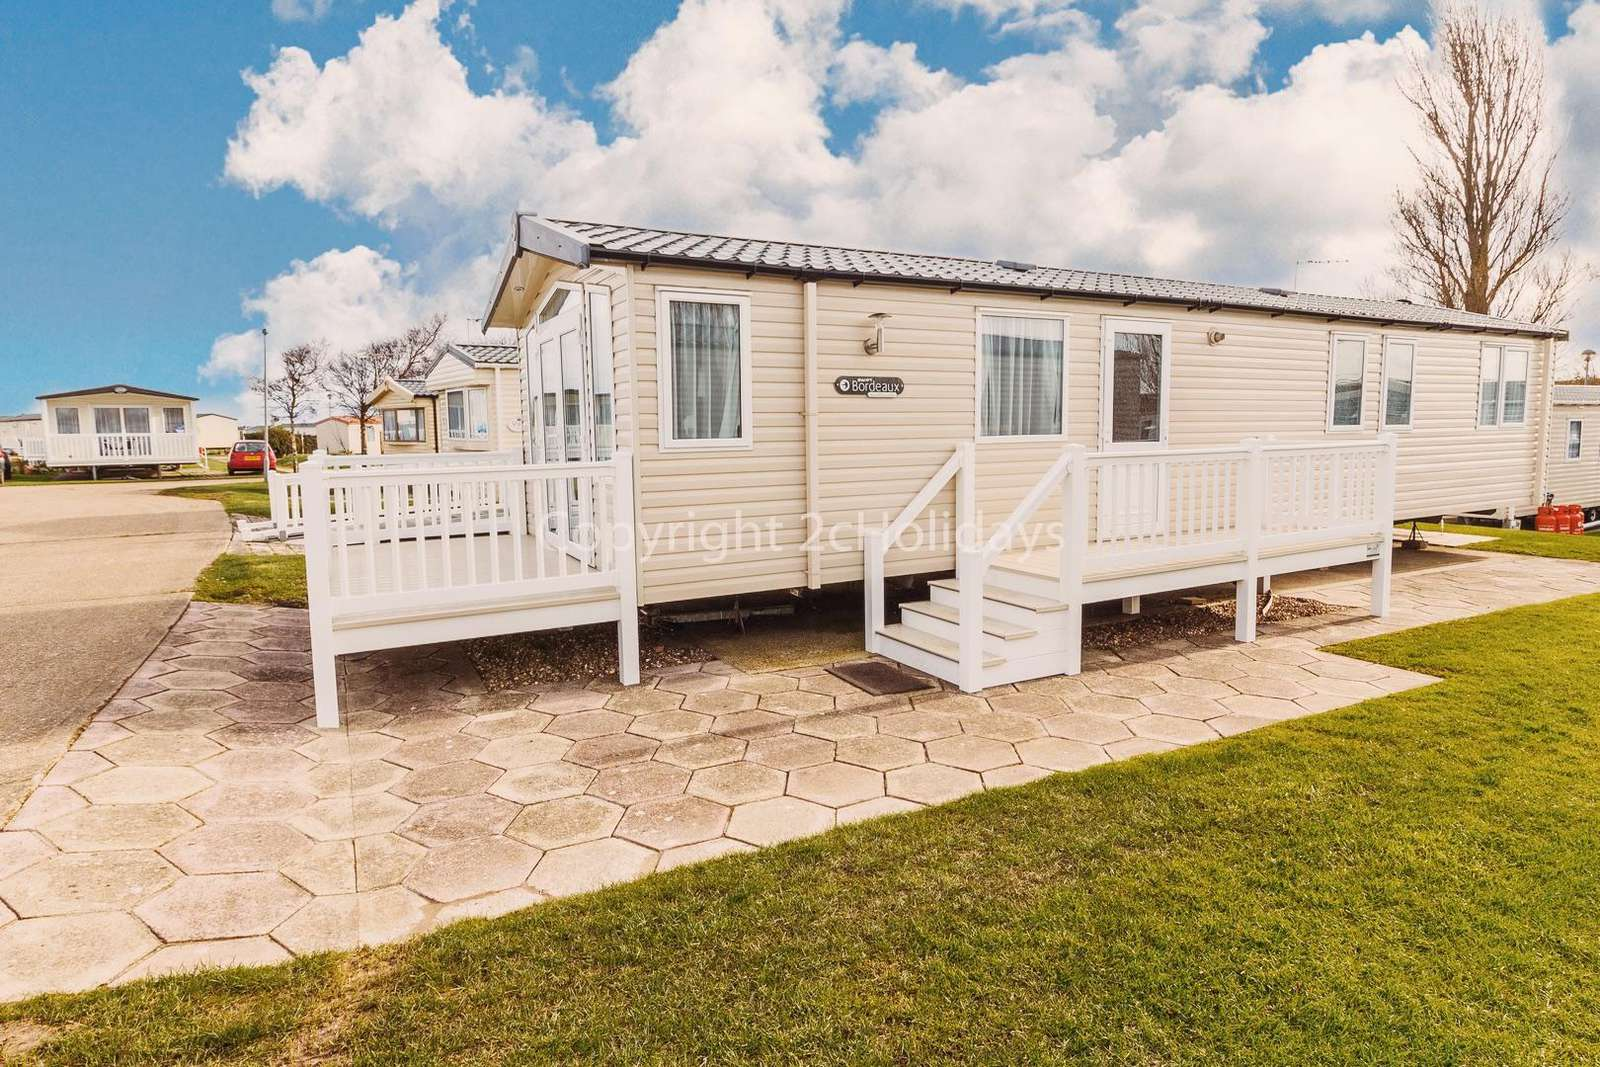 Lovely accommodation, only a short drive to Great Yarmouth!